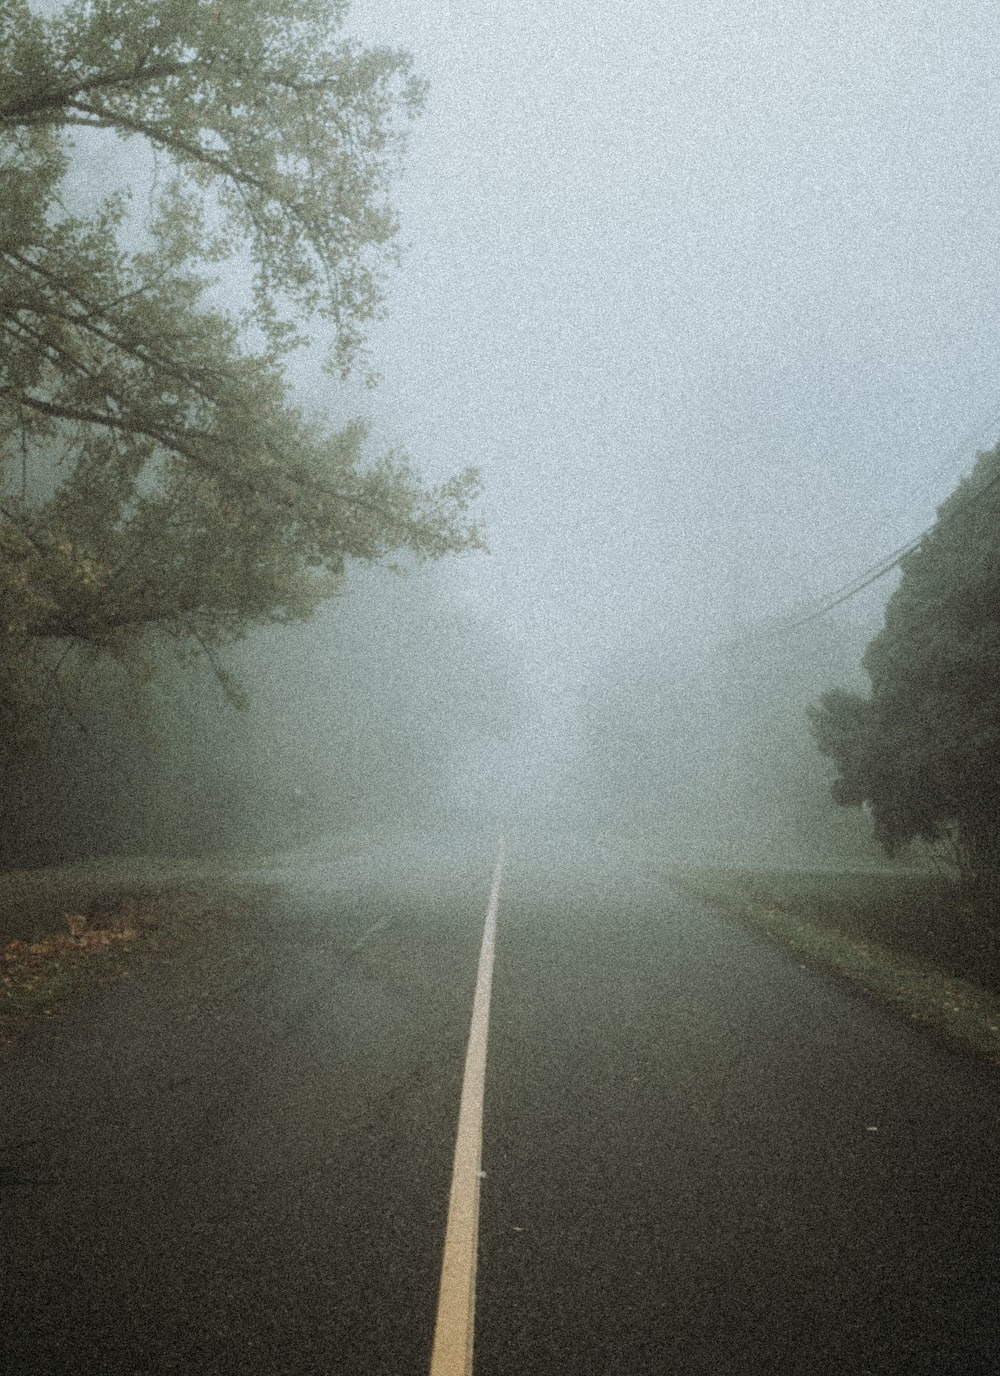 green trees beside road during foggy weather